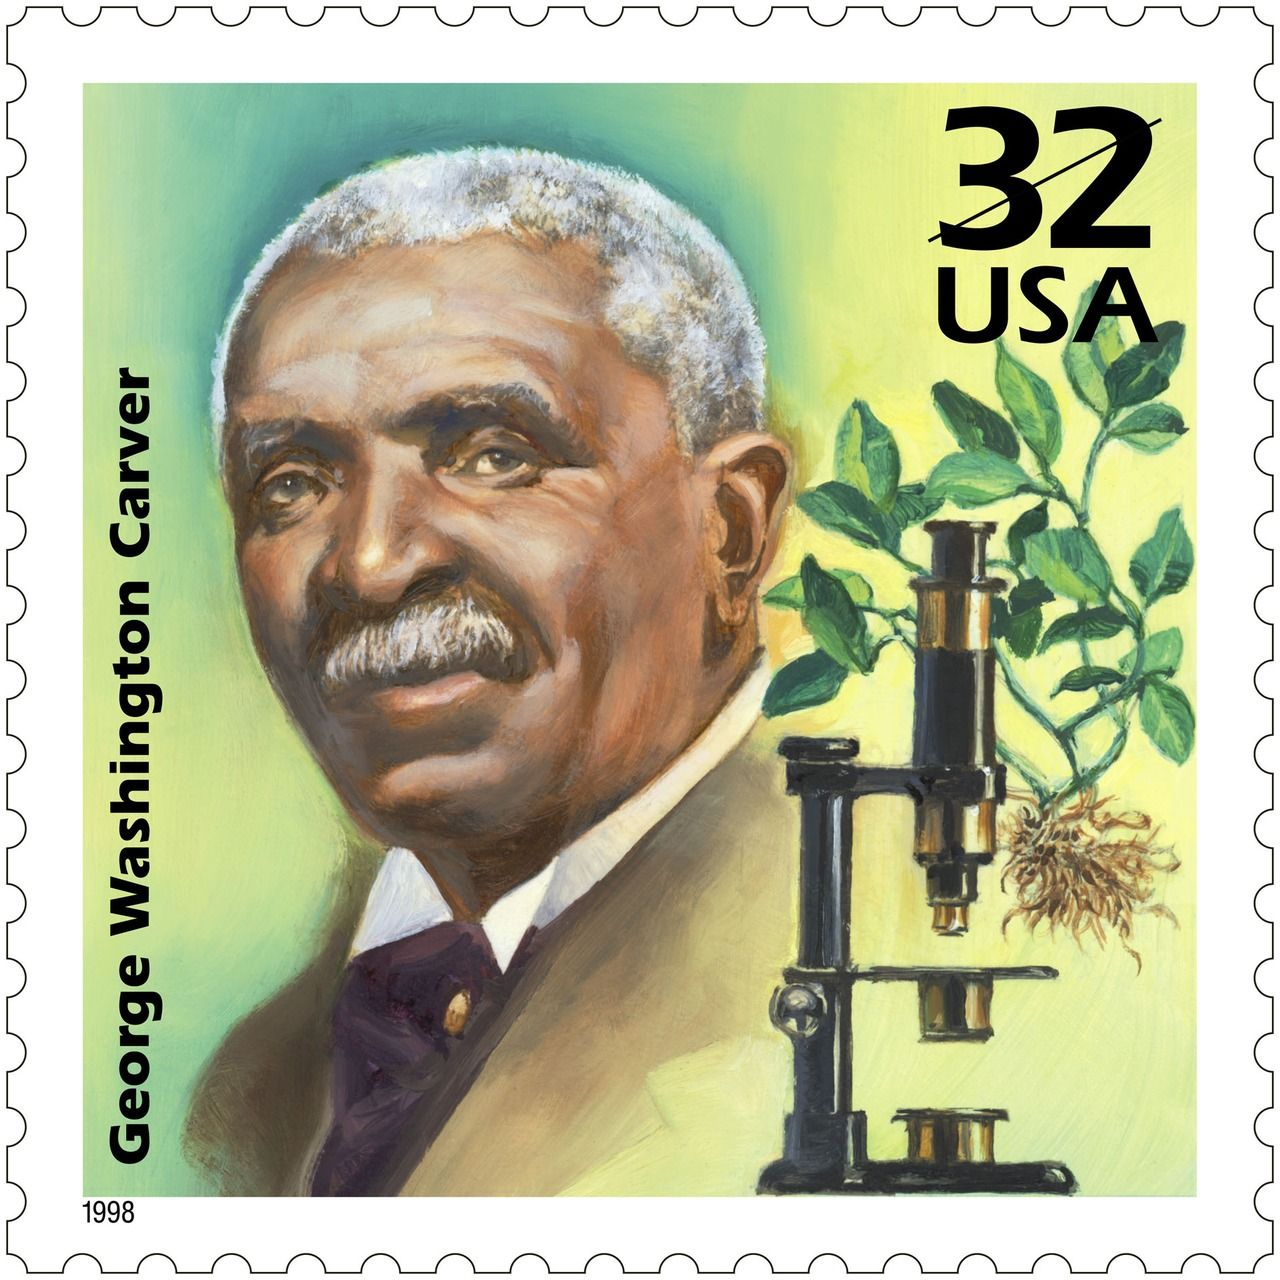 George Washington Carver Improved The Economy Of The South